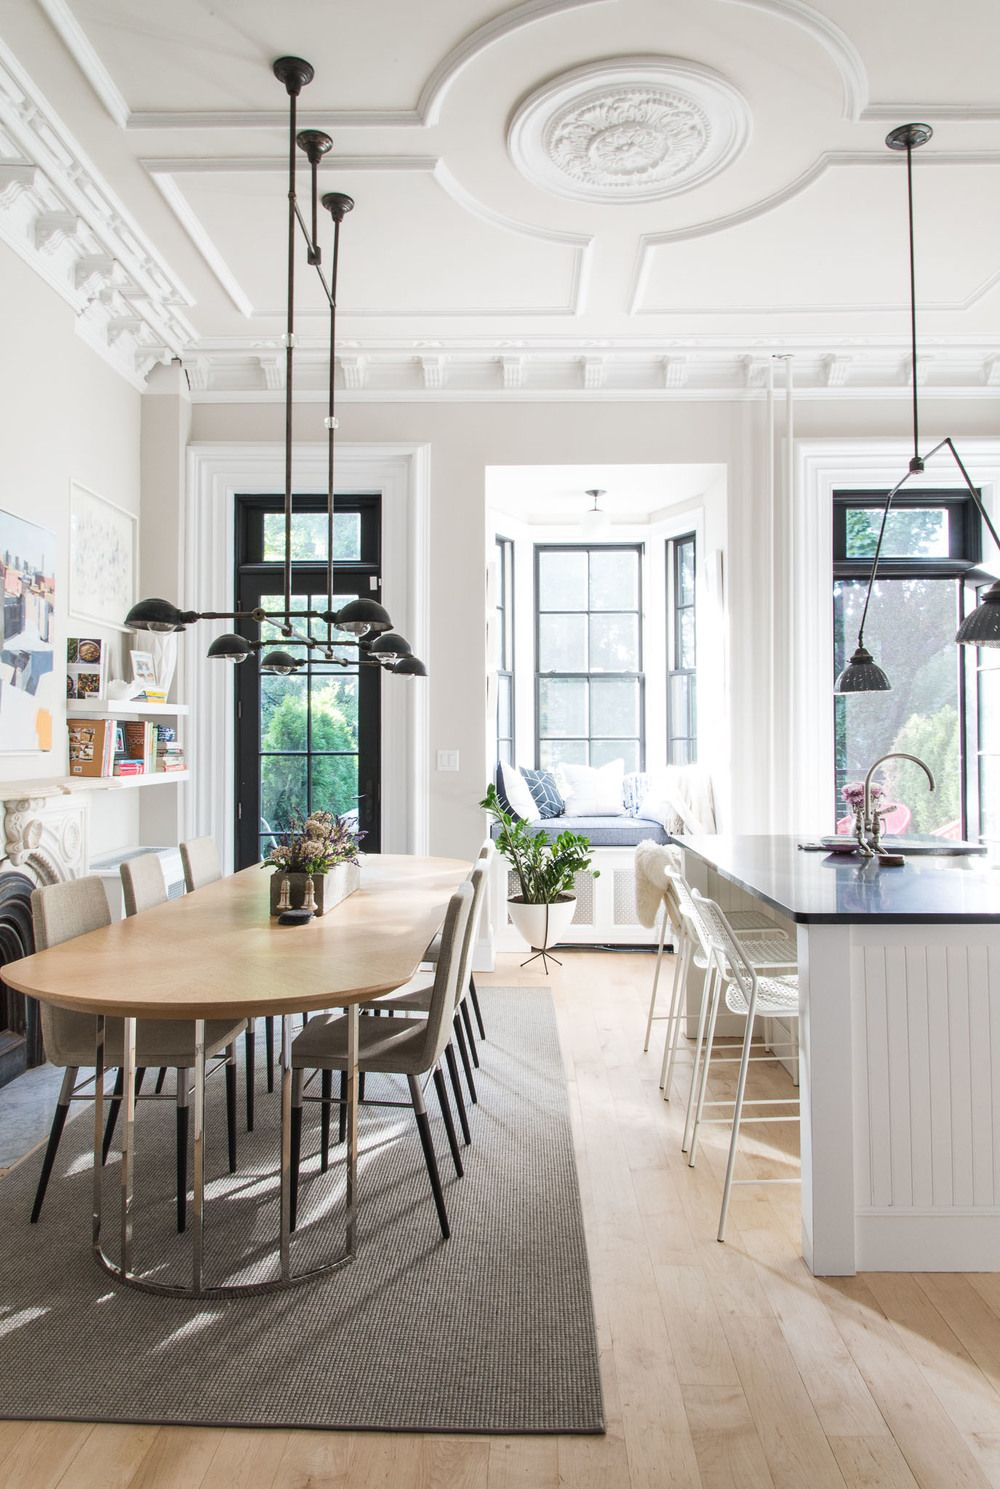 Dream Home Status 5 Of The Most Beautiful Brownstones In Nyc City Style Brownstone Interiors Brownstone Homes Home